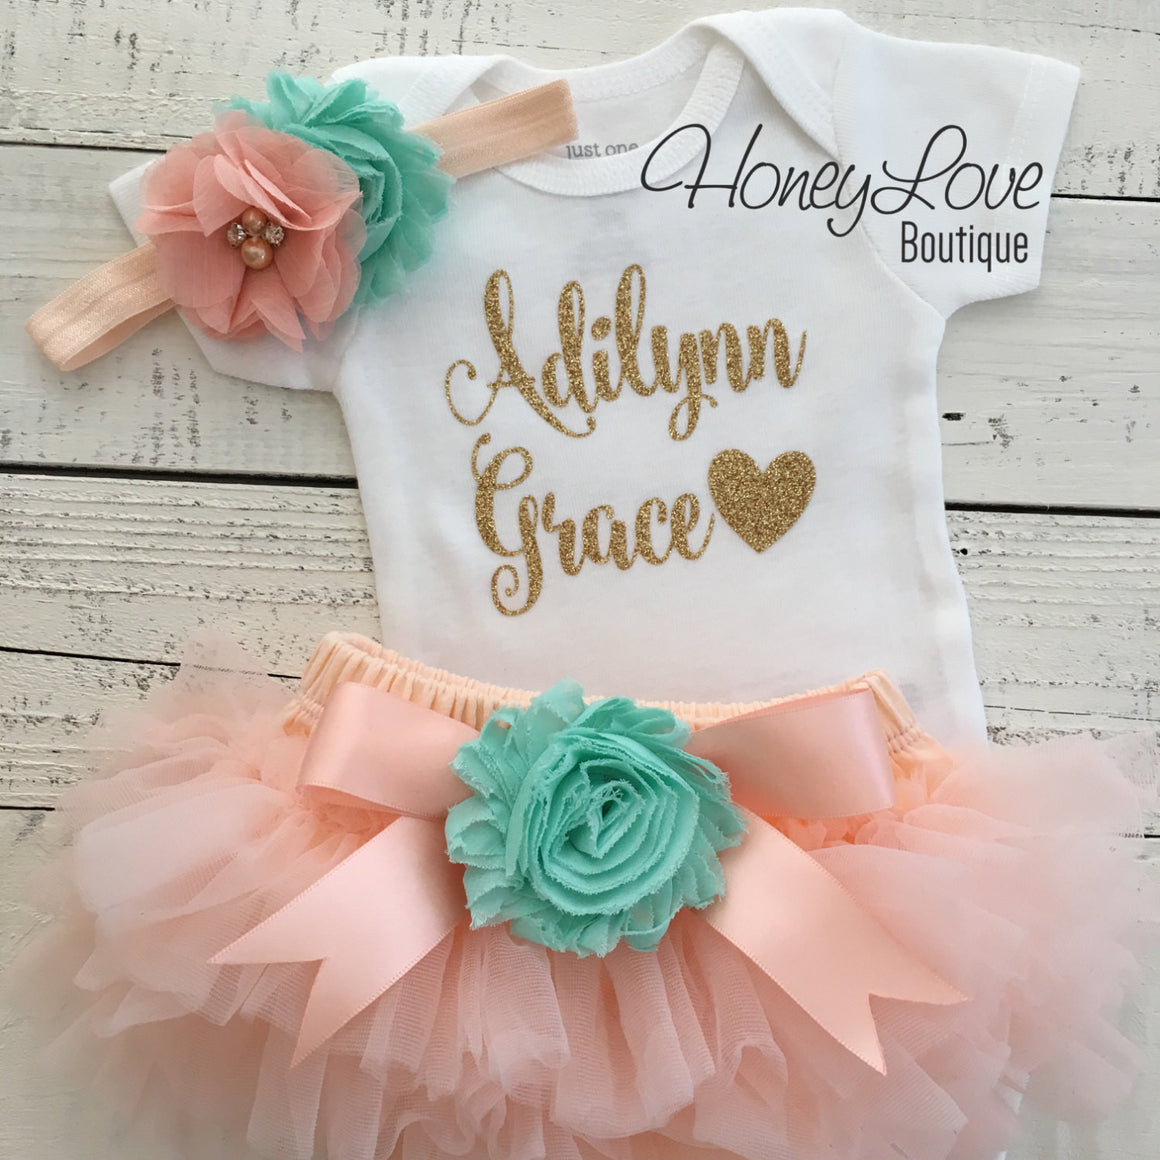 PERSONALIZED Name Outfit - Gold glitter and Peach/Mint/Aqua - embellished tutu skirt bloomers